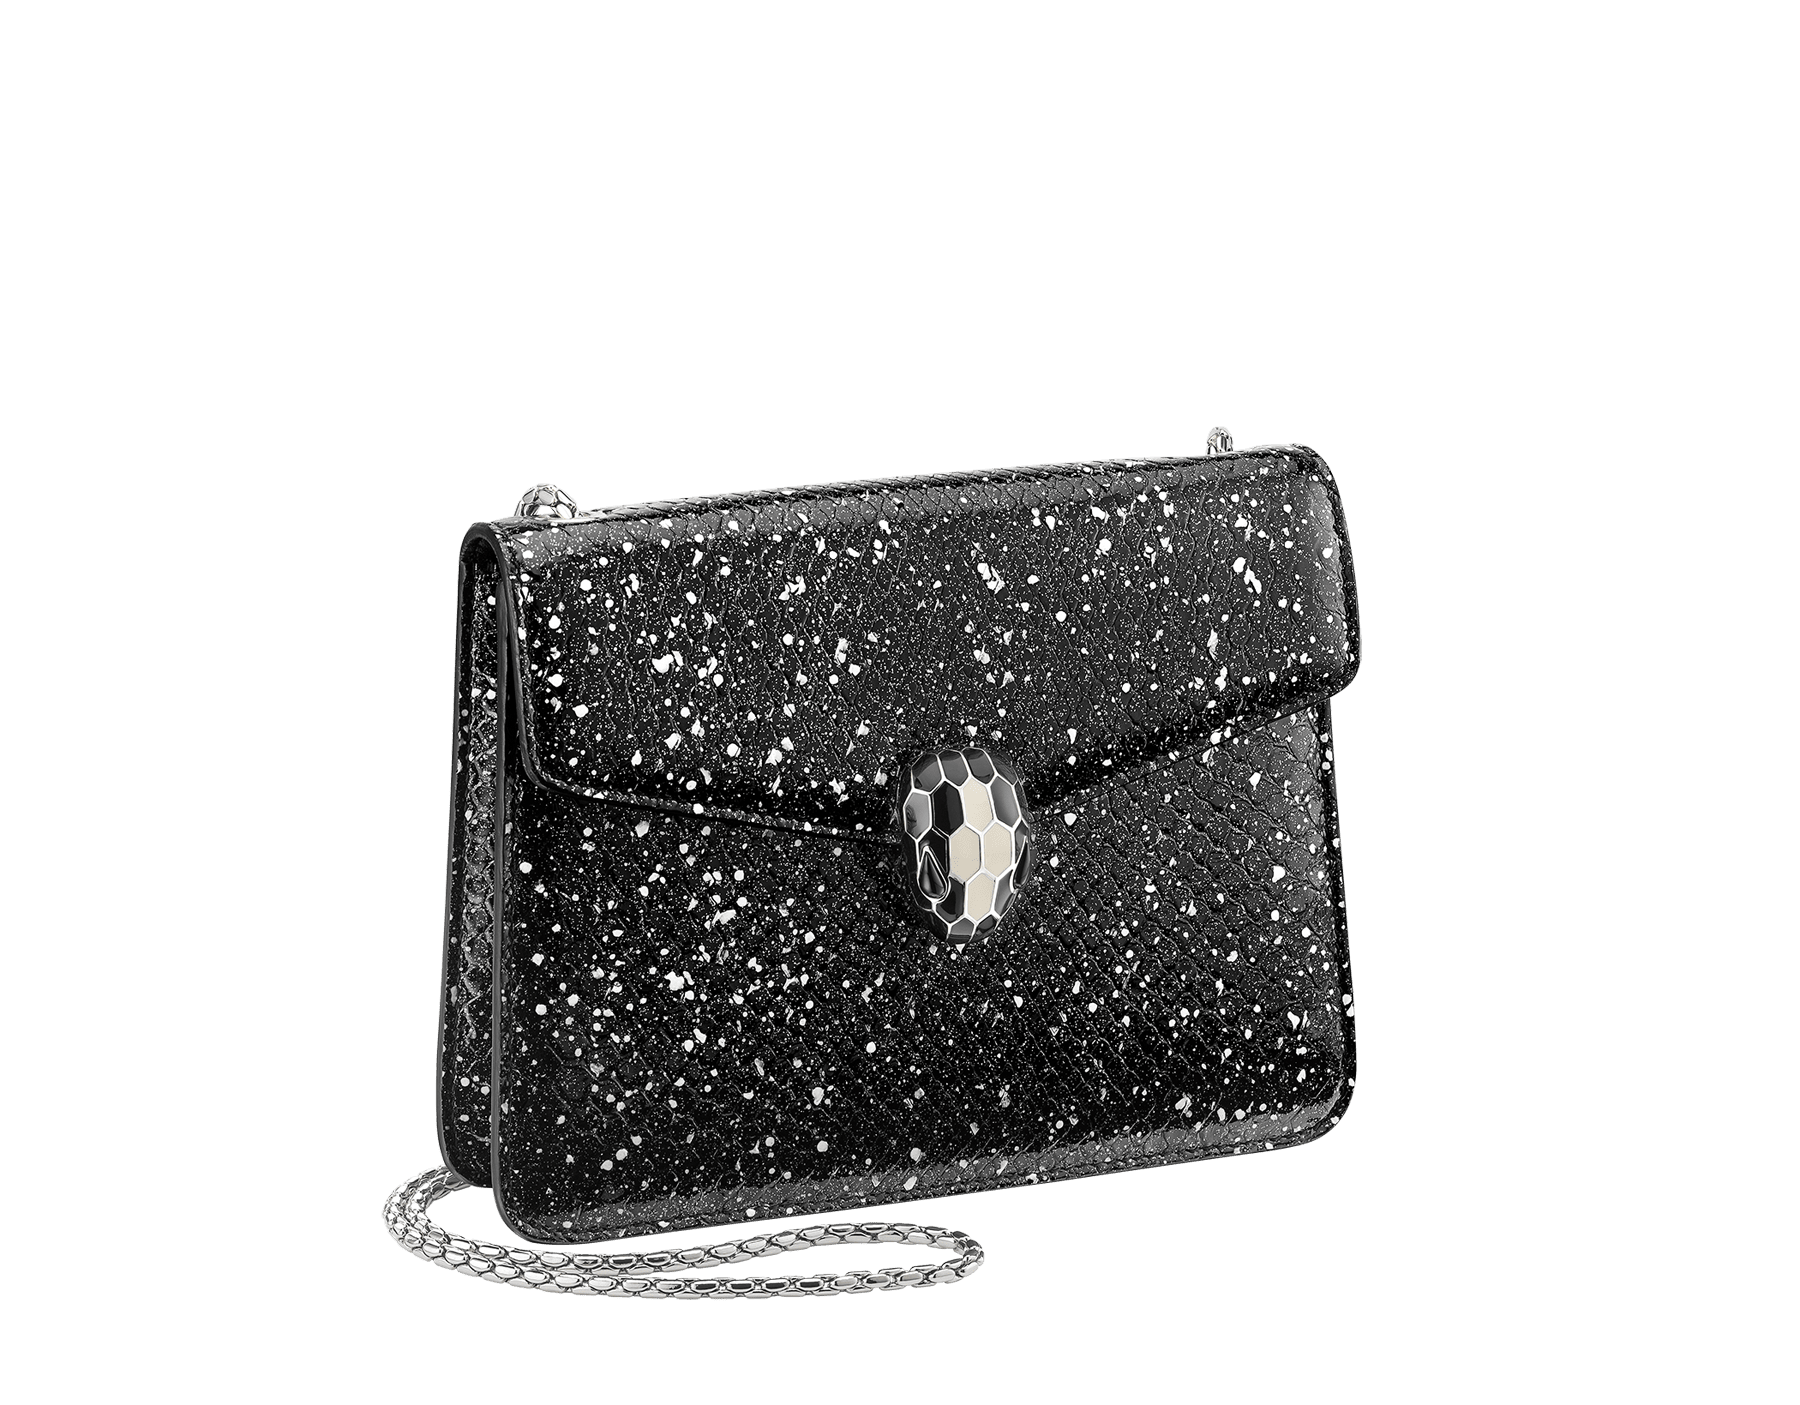 Serpenti Forever crossbody bag in black and white Cosmic python skin. Snakehead closure in palladium plated brass decorated with black and white enamel, and black onyx eyes. 288110 image 2